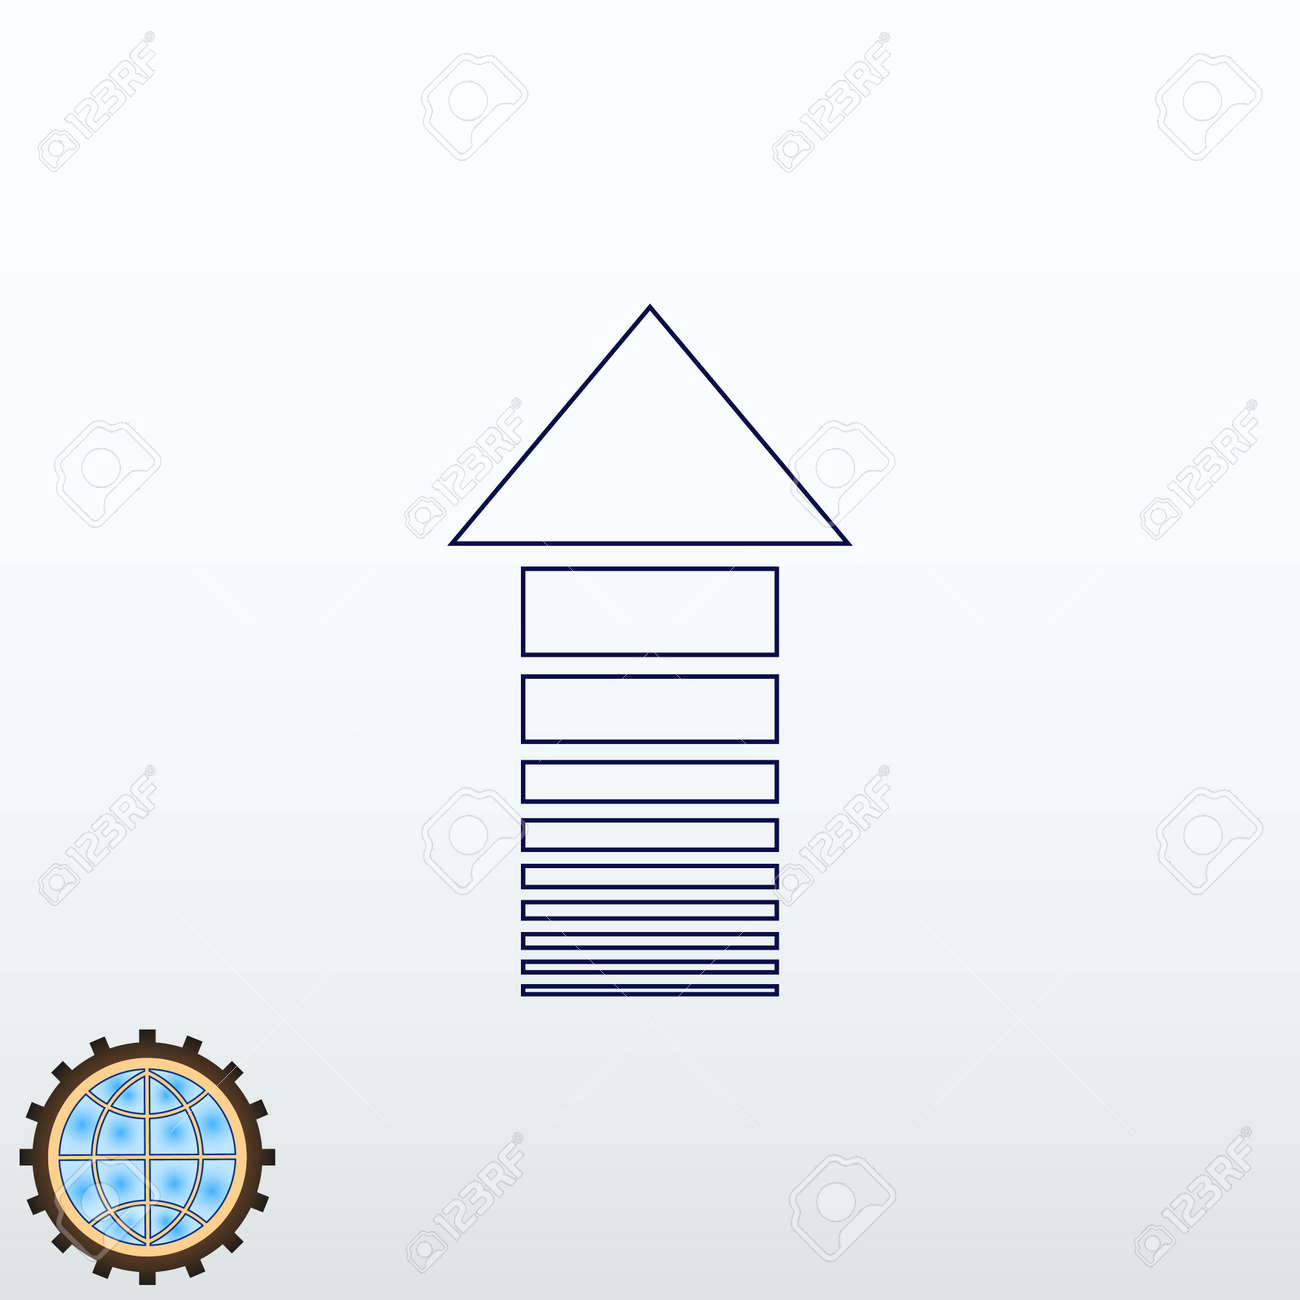 Arrow indicates the direction icon vector illustration royalty free arrow indicates the direction icon vector illustration banco de imagens 83393989 ccuart Images